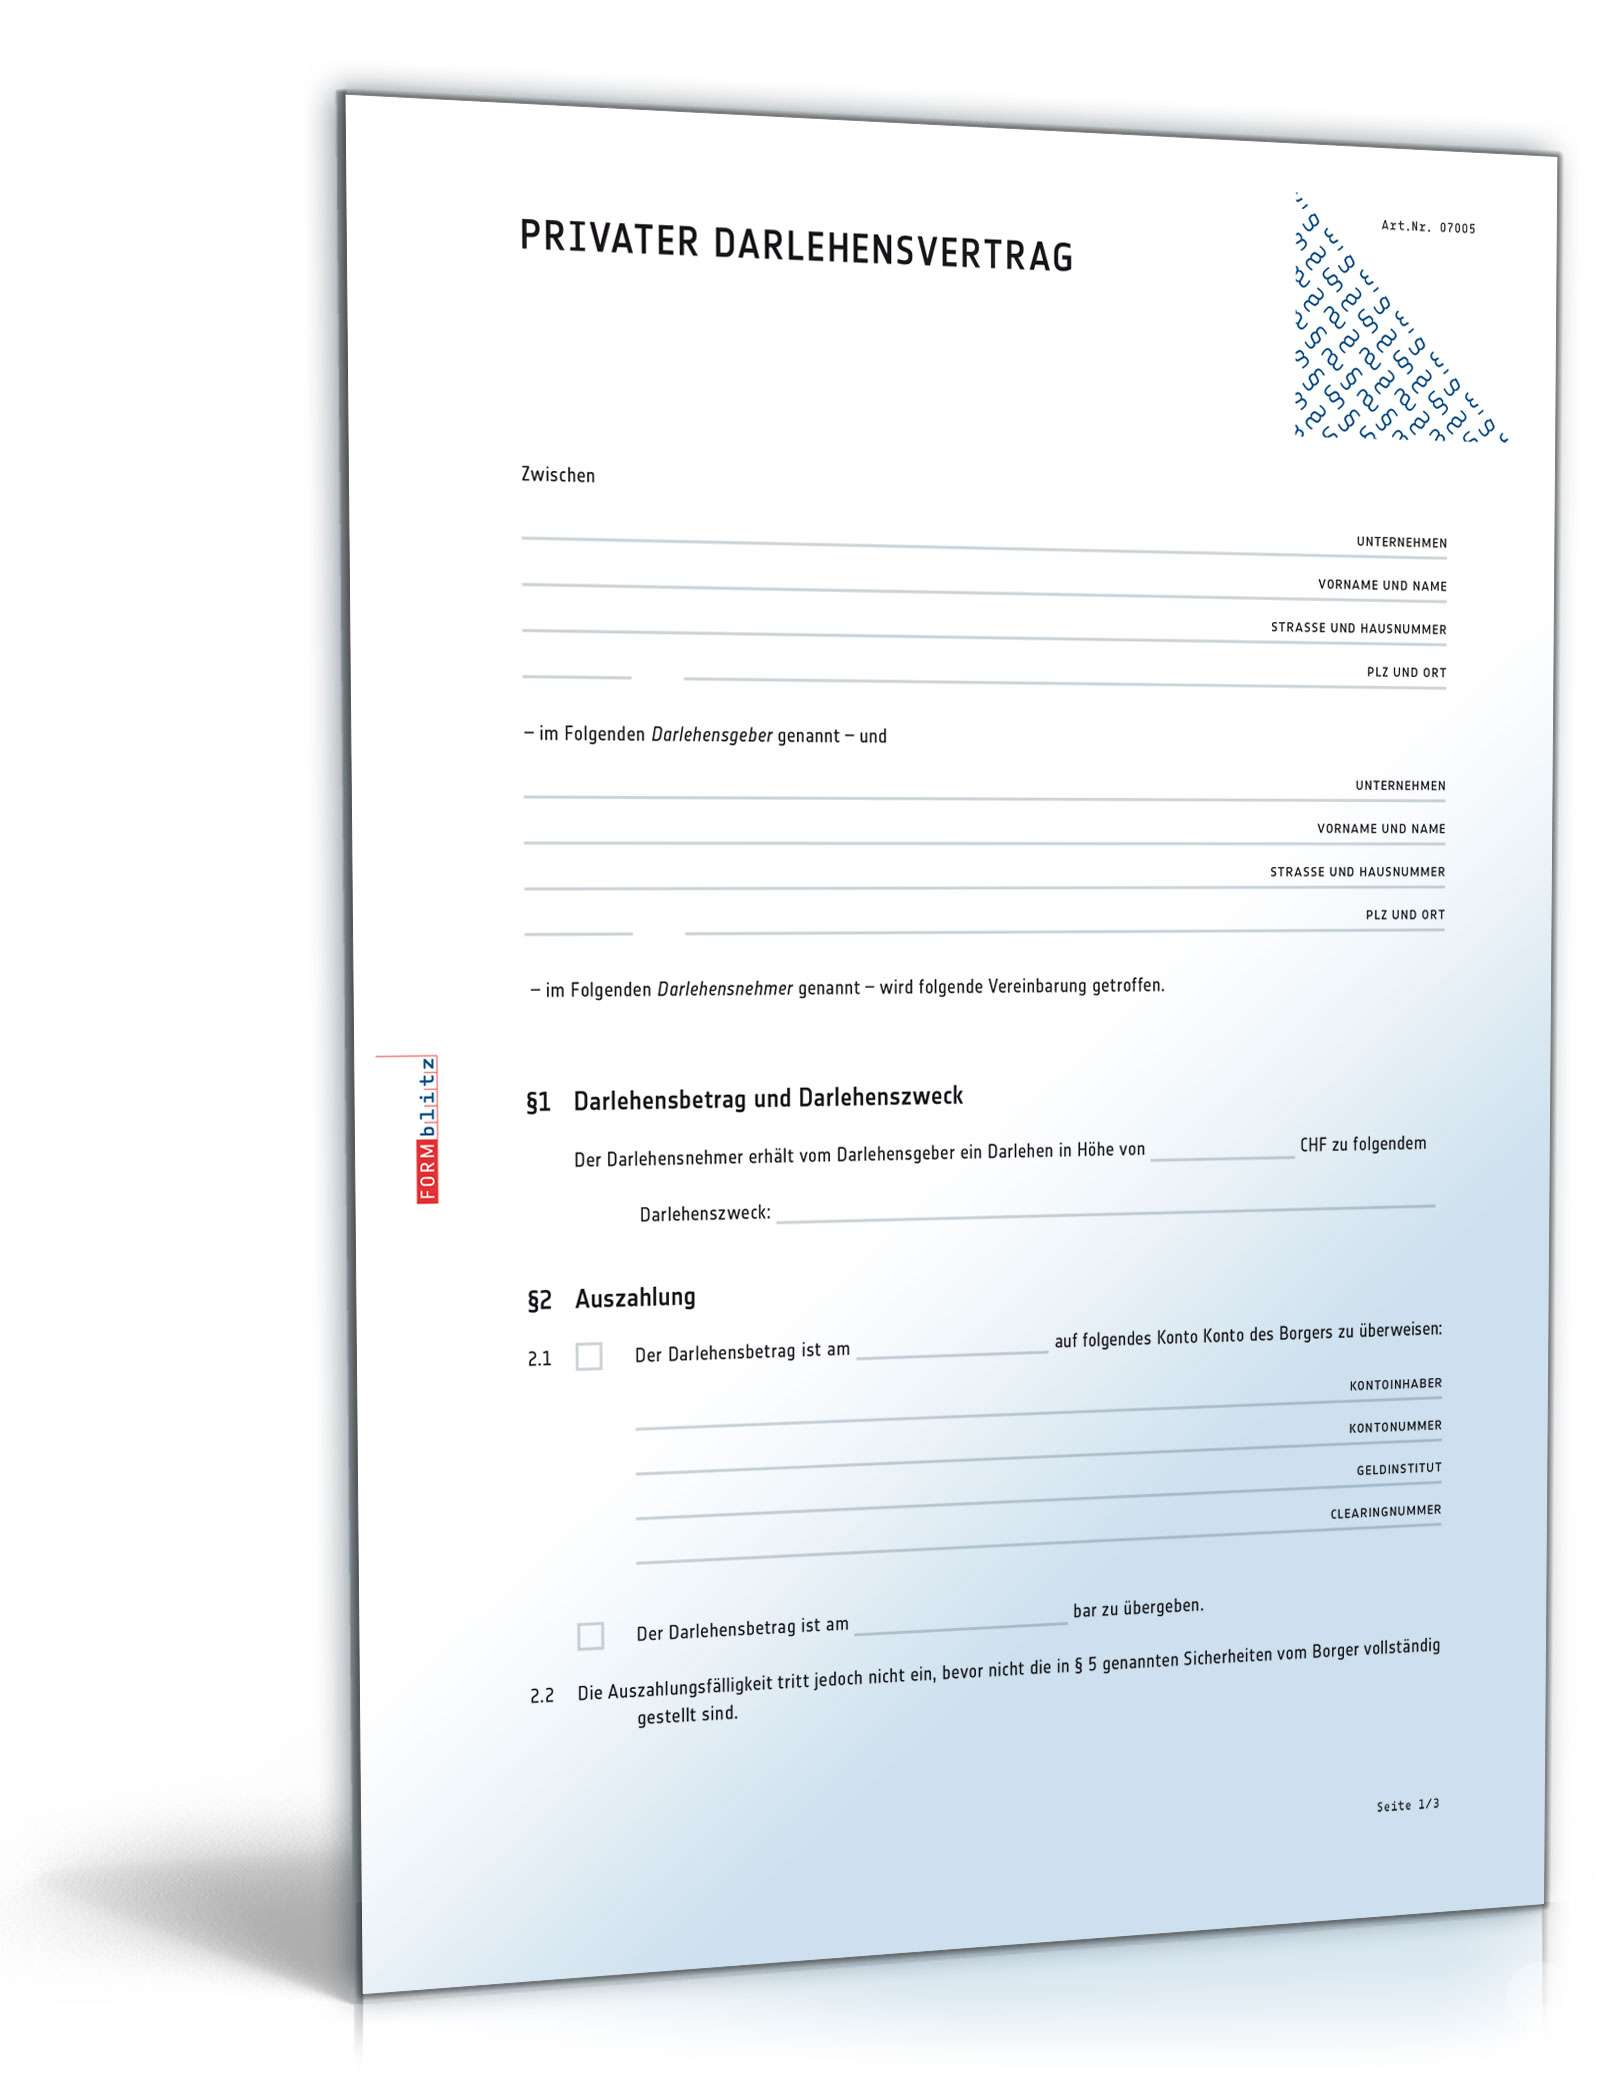 Privater Darlehensvertrag Muster Vorlage Zum Download